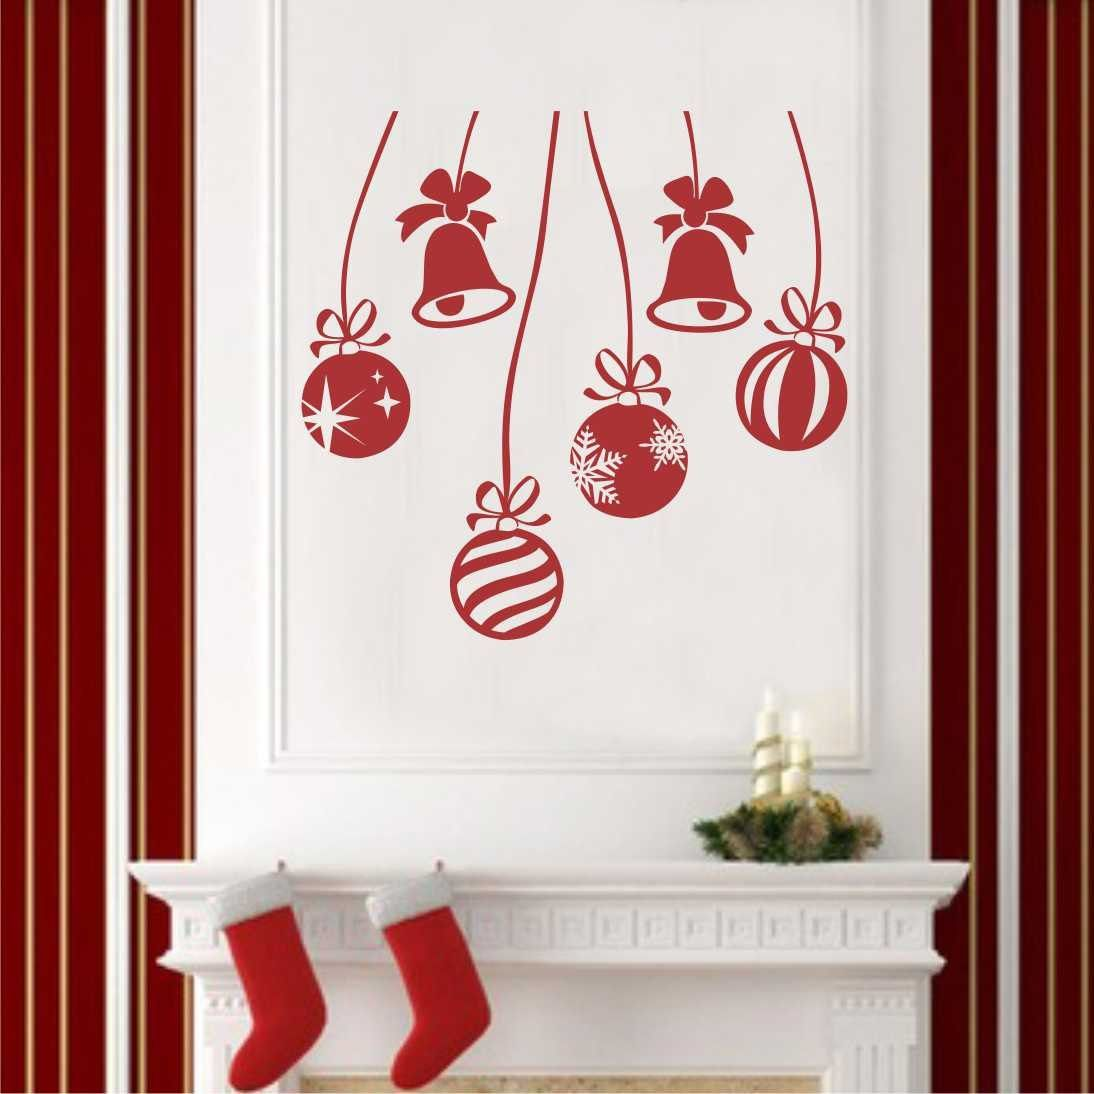 Christmas Ornaments Decal Holiday Decoration Vinyl Wall Decals - Vinyl wall decal adhesive